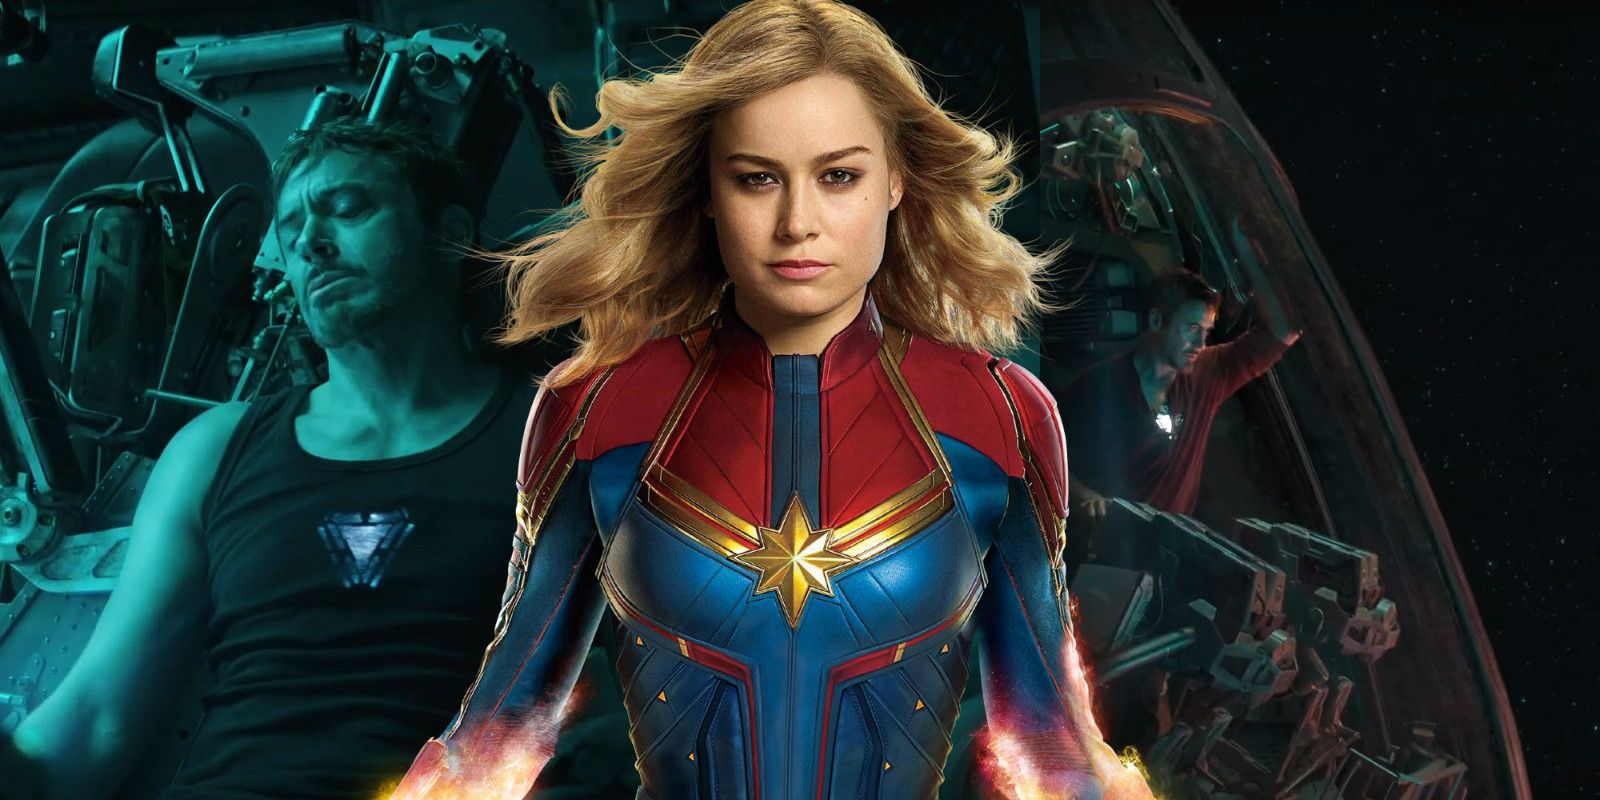 Avengers: Endgame Picture: Avengers 4 Theory: Captain Marvel Saves Tony Stark In Space